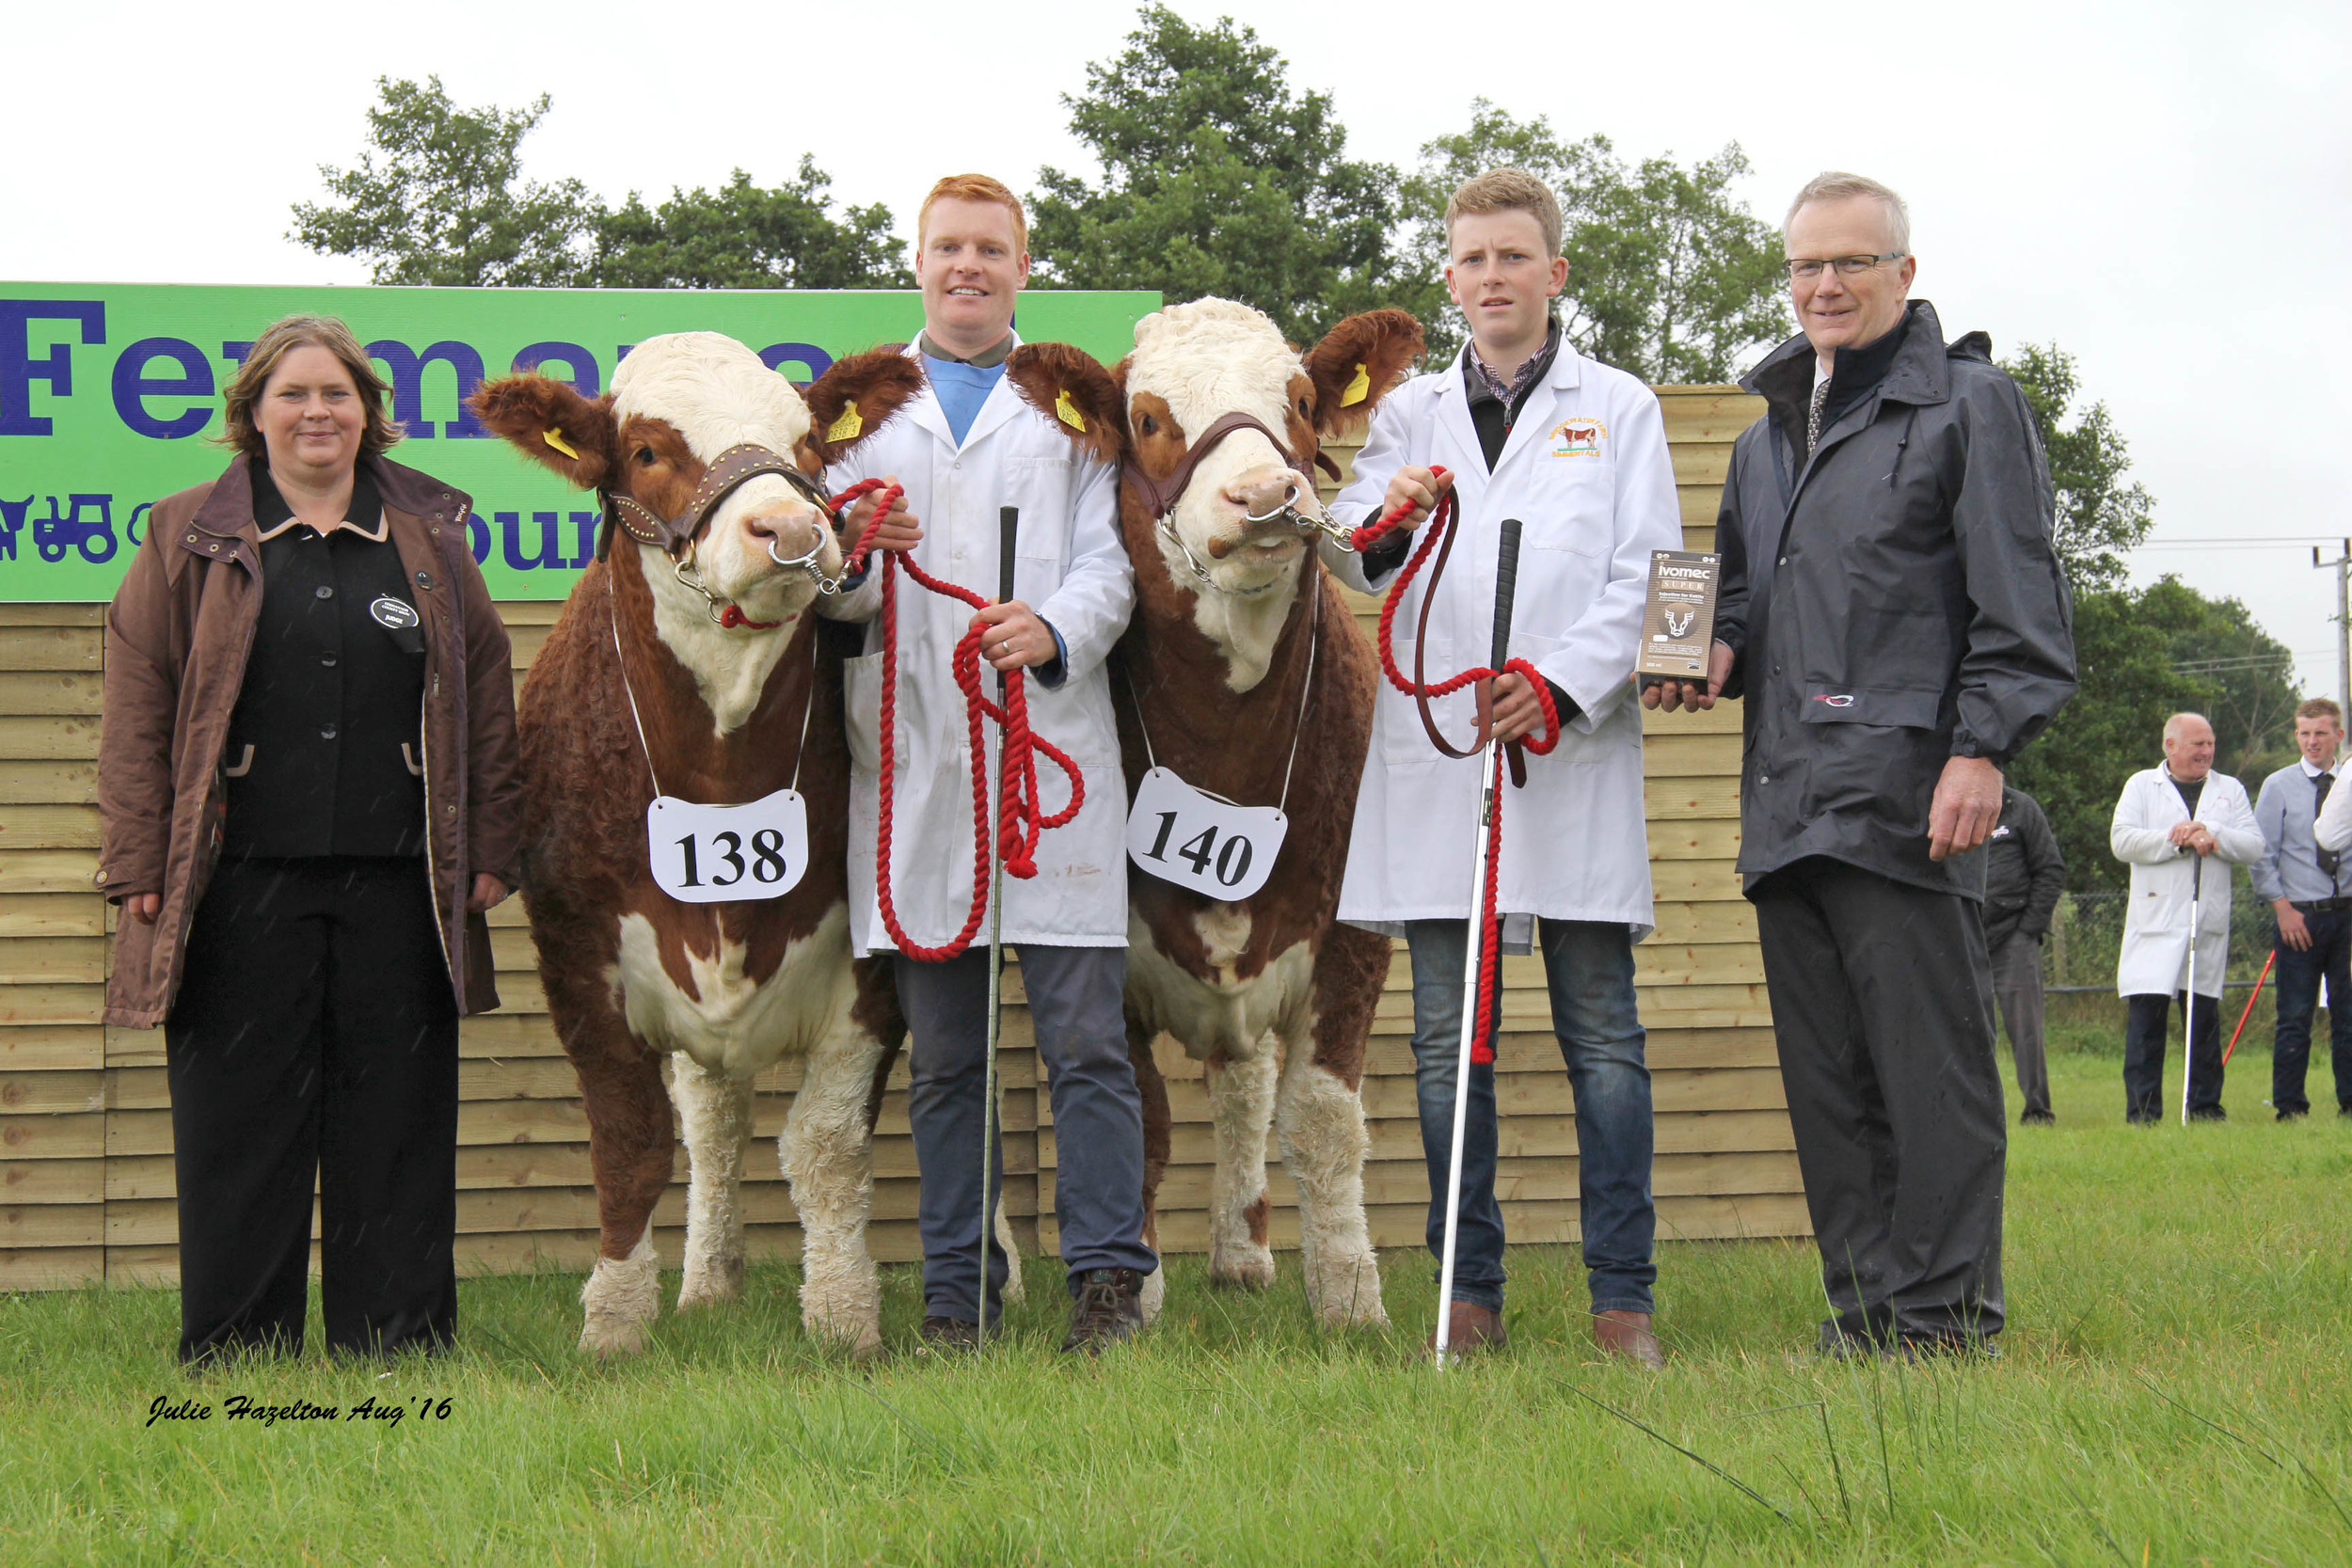 The 2016 Ivomec Super Simmental Pair of the Year winners were Lisglass Fabulous and Lisglass Felicity bred by Leslie and Christopher Weatherup, Balllyclare. Pictured at the presentation are judge Bridget Borlase, Hertfordshire; handlers Christopher Weatherup and Conor Loane; and sponsor Philip Clarke, Merial Animal Health.